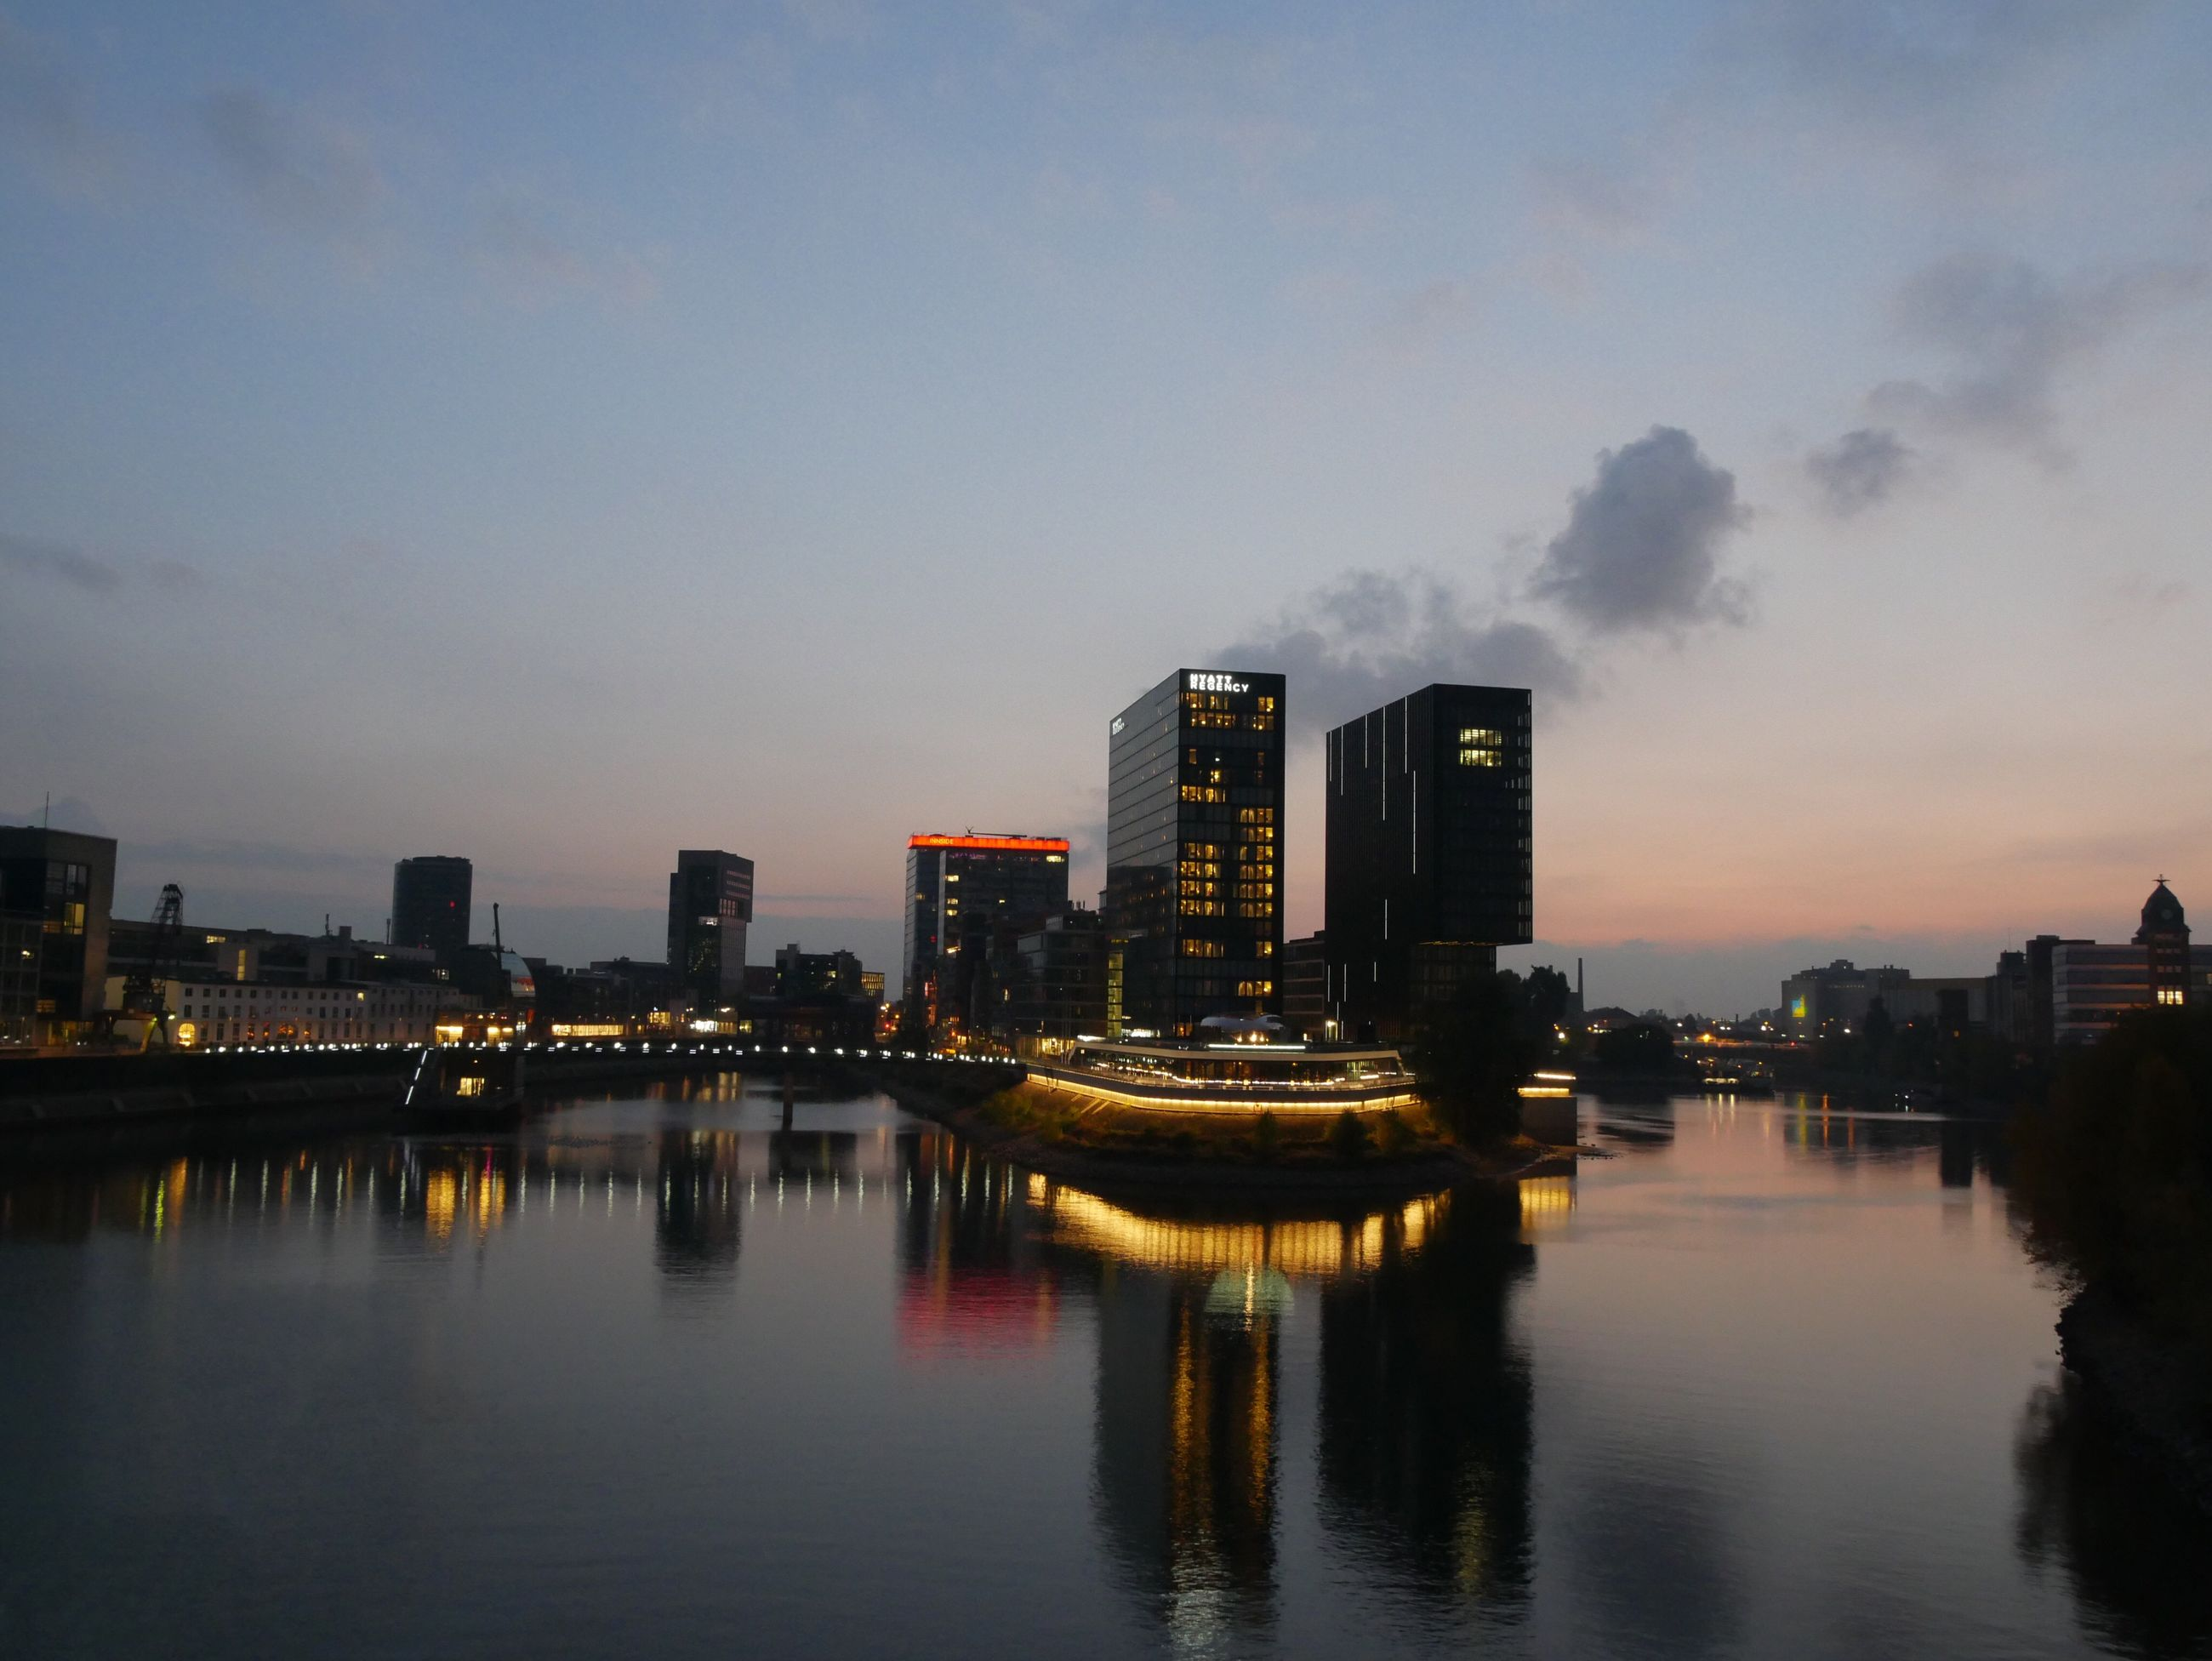 architecture, building exterior, built structure, illuminated, water, reflection, waterfront, city, river, sky, skyscraper, cloud, building story, tall, calm, modern, multi colored, ocean, financial district, sea, water surface, urban skyline, no people, development